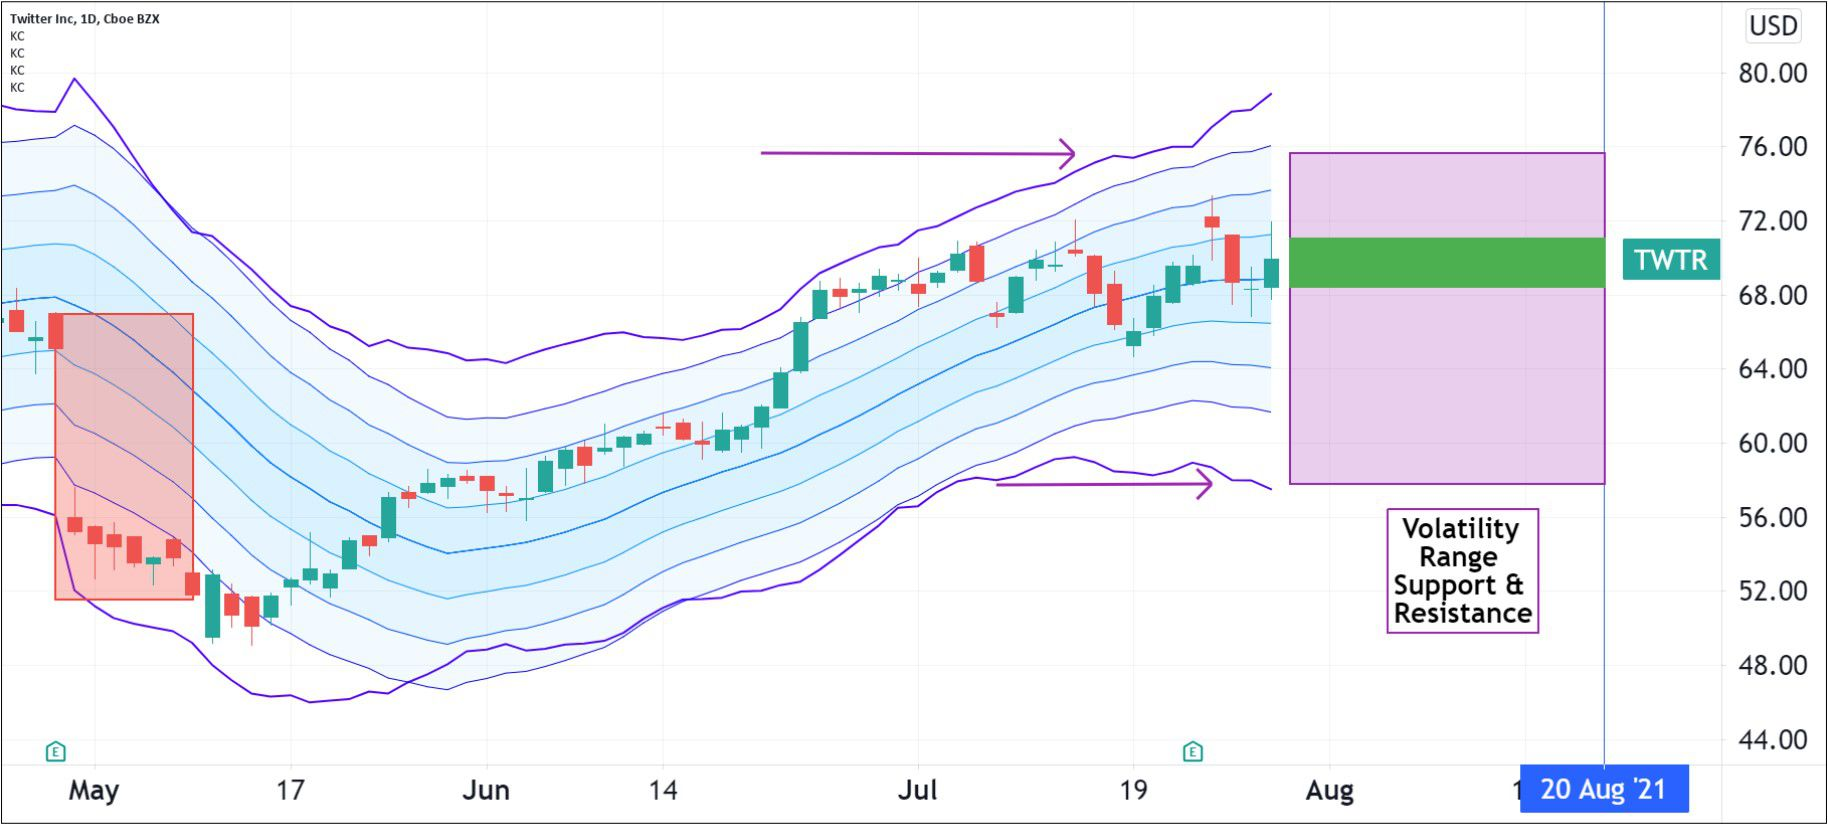 Volatility pattern for Twitter, Inc. (TWTR)